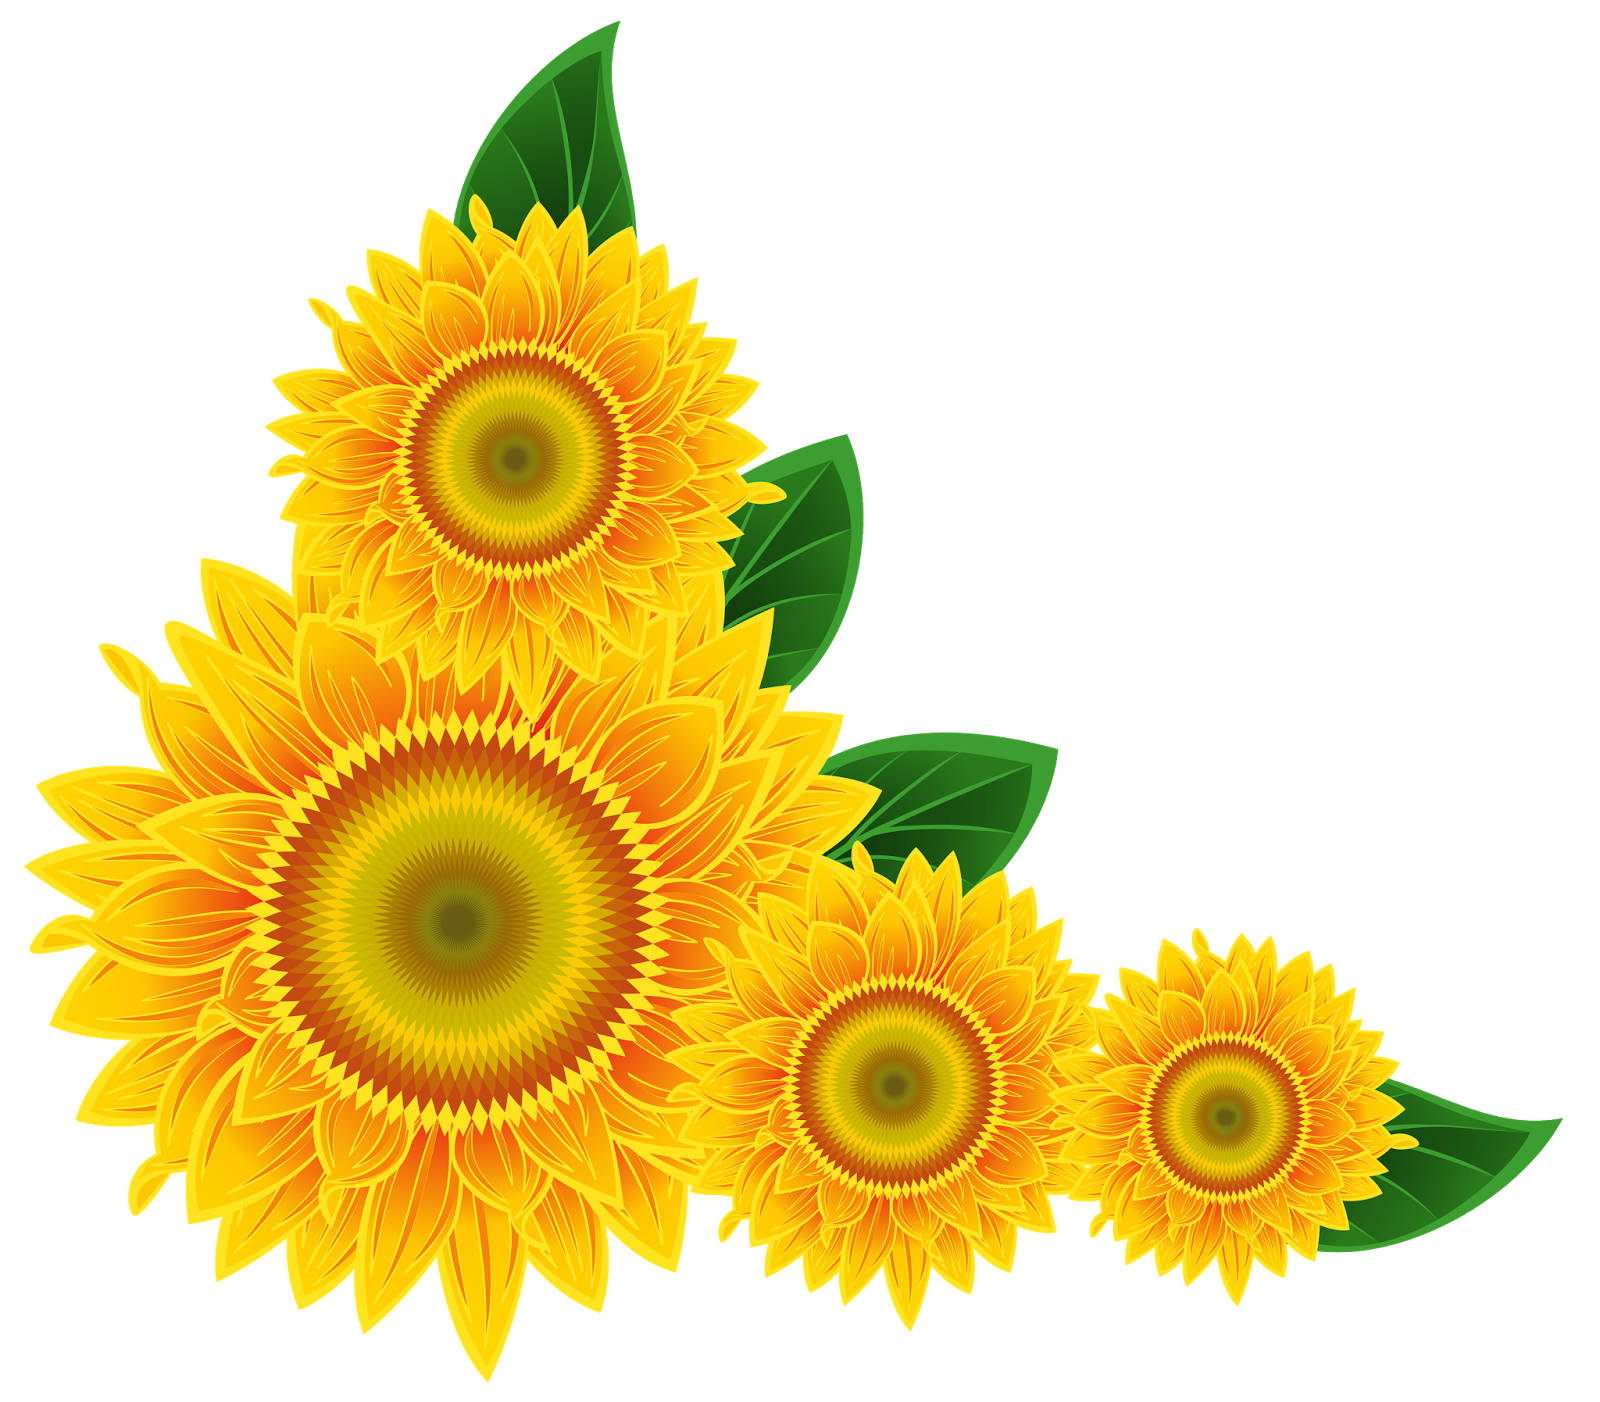 Sunflower border png. Transparent pictures free icons